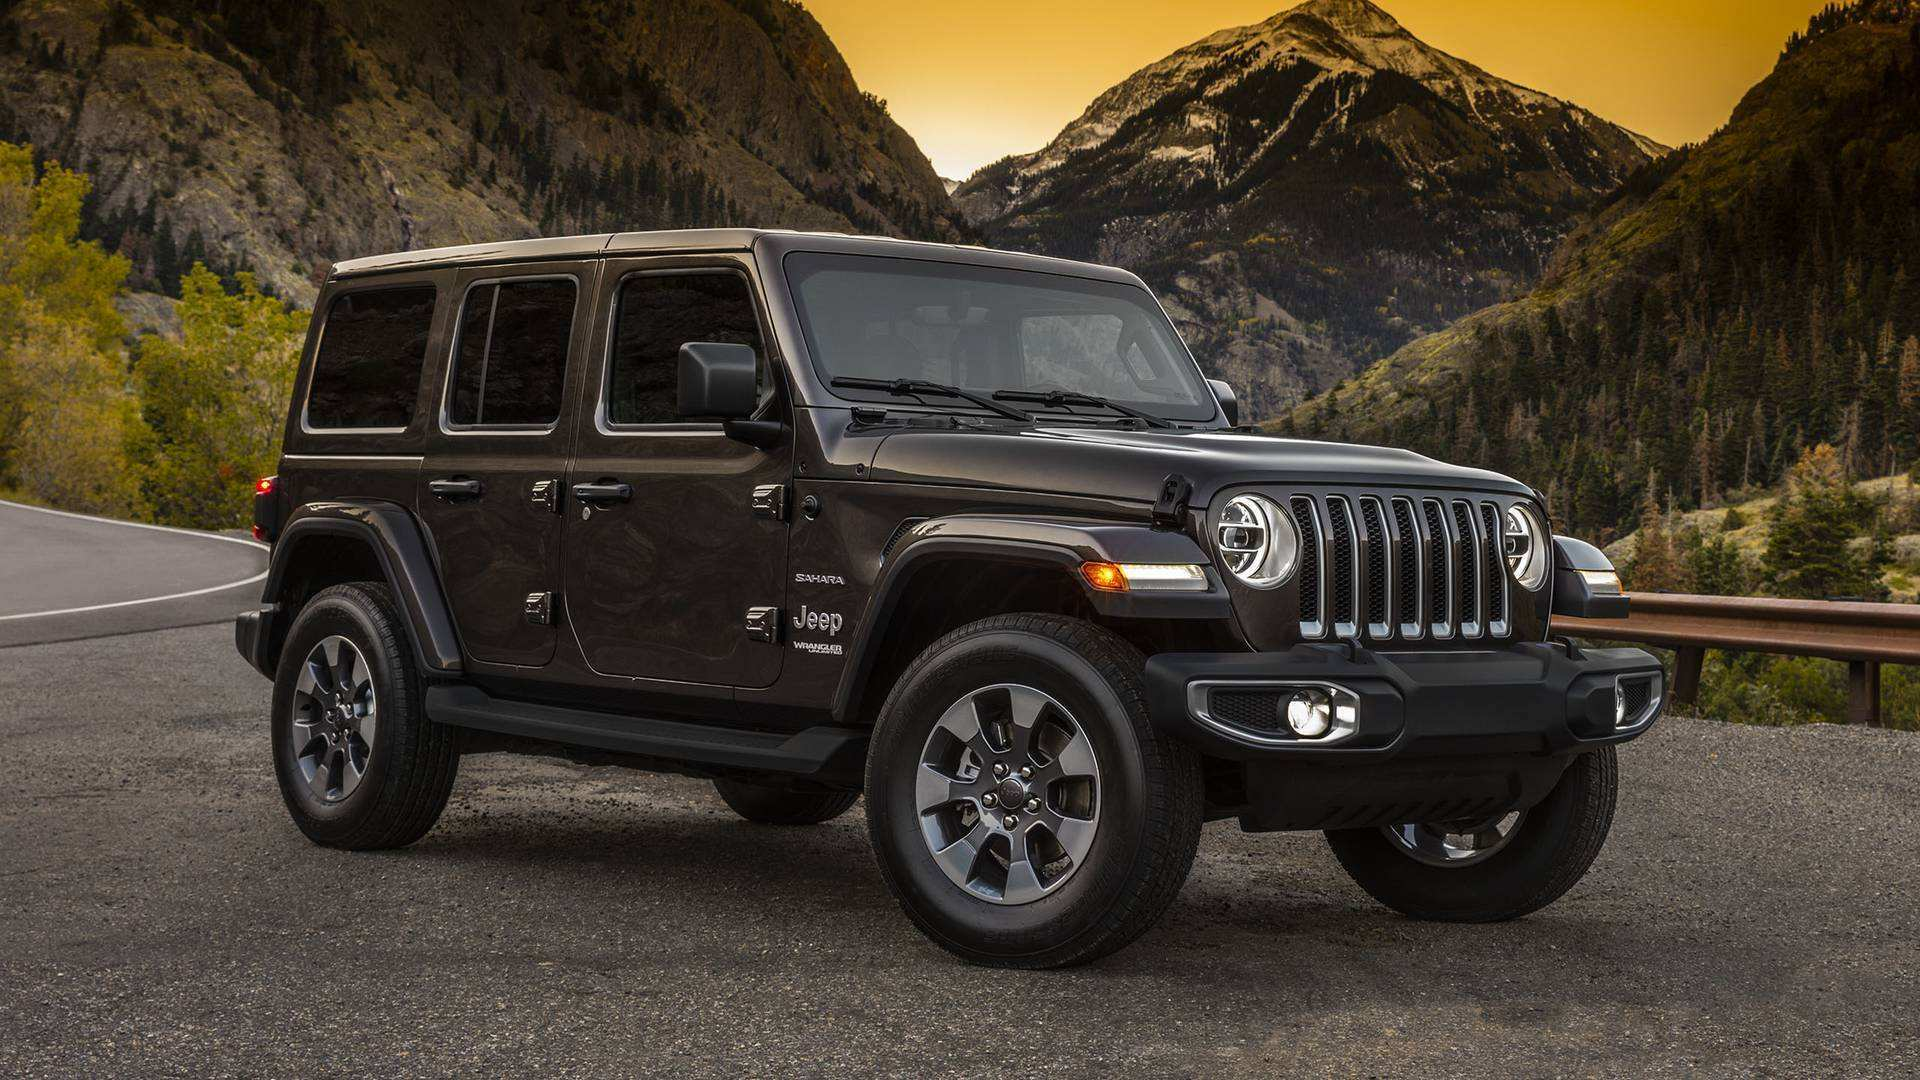 54 The Best 2020 Jeep Wrangler Diesel Concept